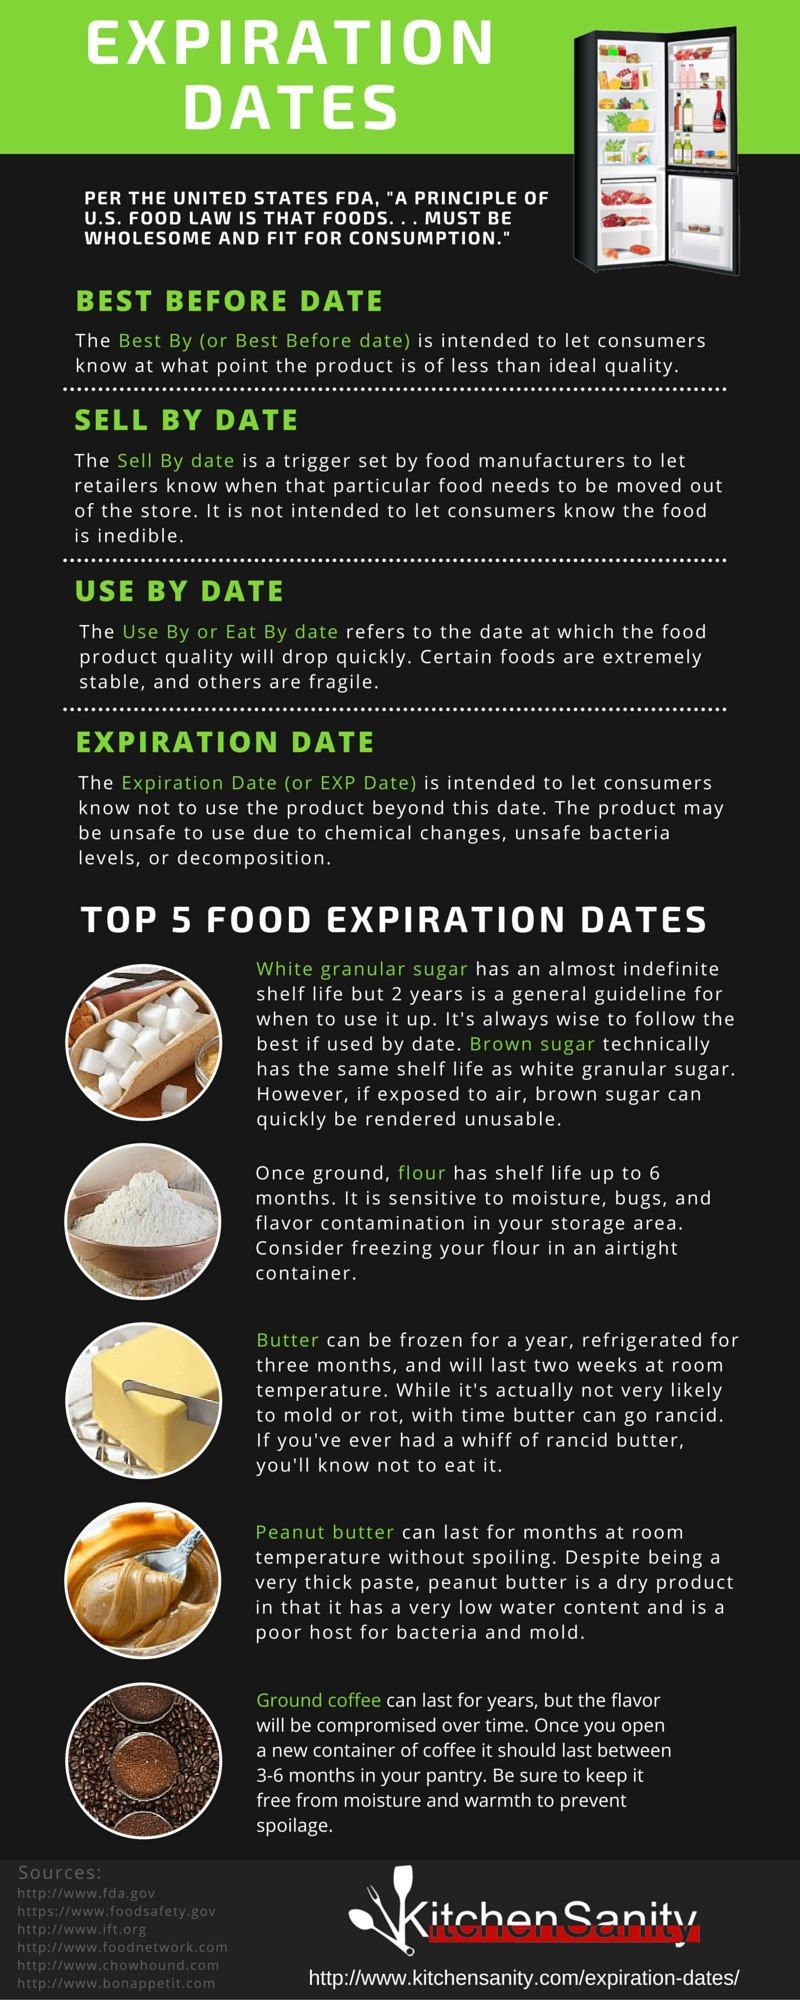 Food Expiration Dates Food Safety With Images Expiration